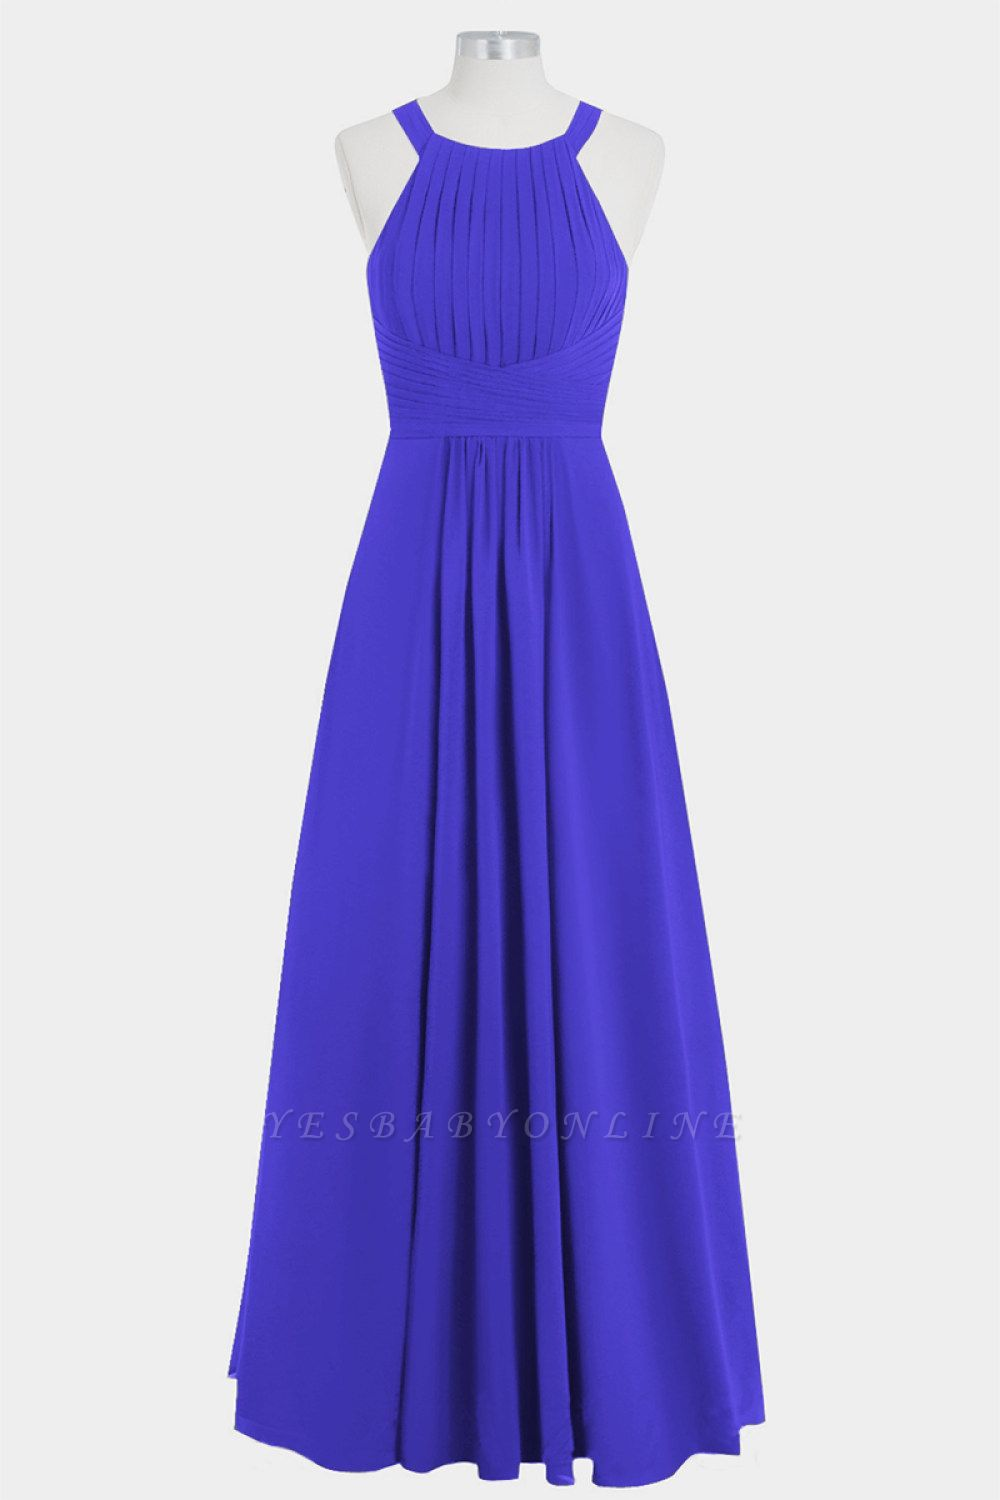 A Line Chiffon Round Neck Hollow out Floor Length Bridesmaid Dresses with Ruffles